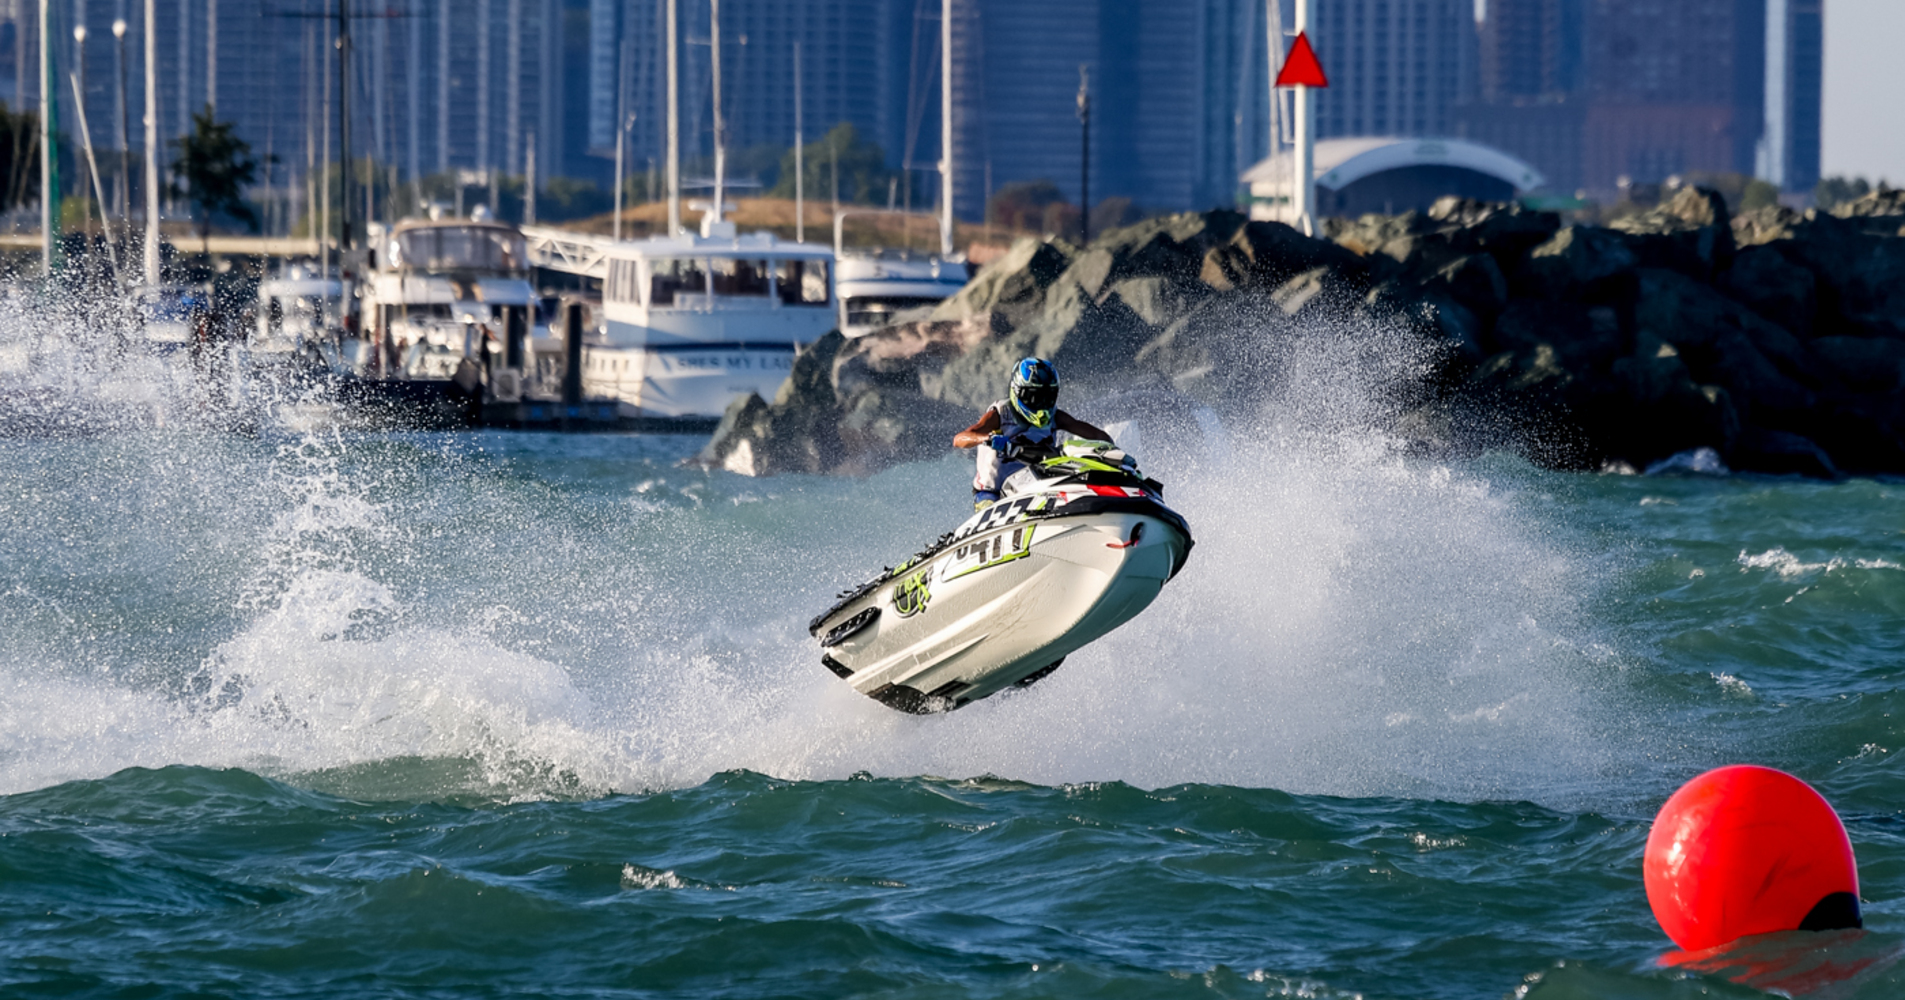 Jay Edworthy backed up his performance in Whiting to secure the North East Series title for a second year running